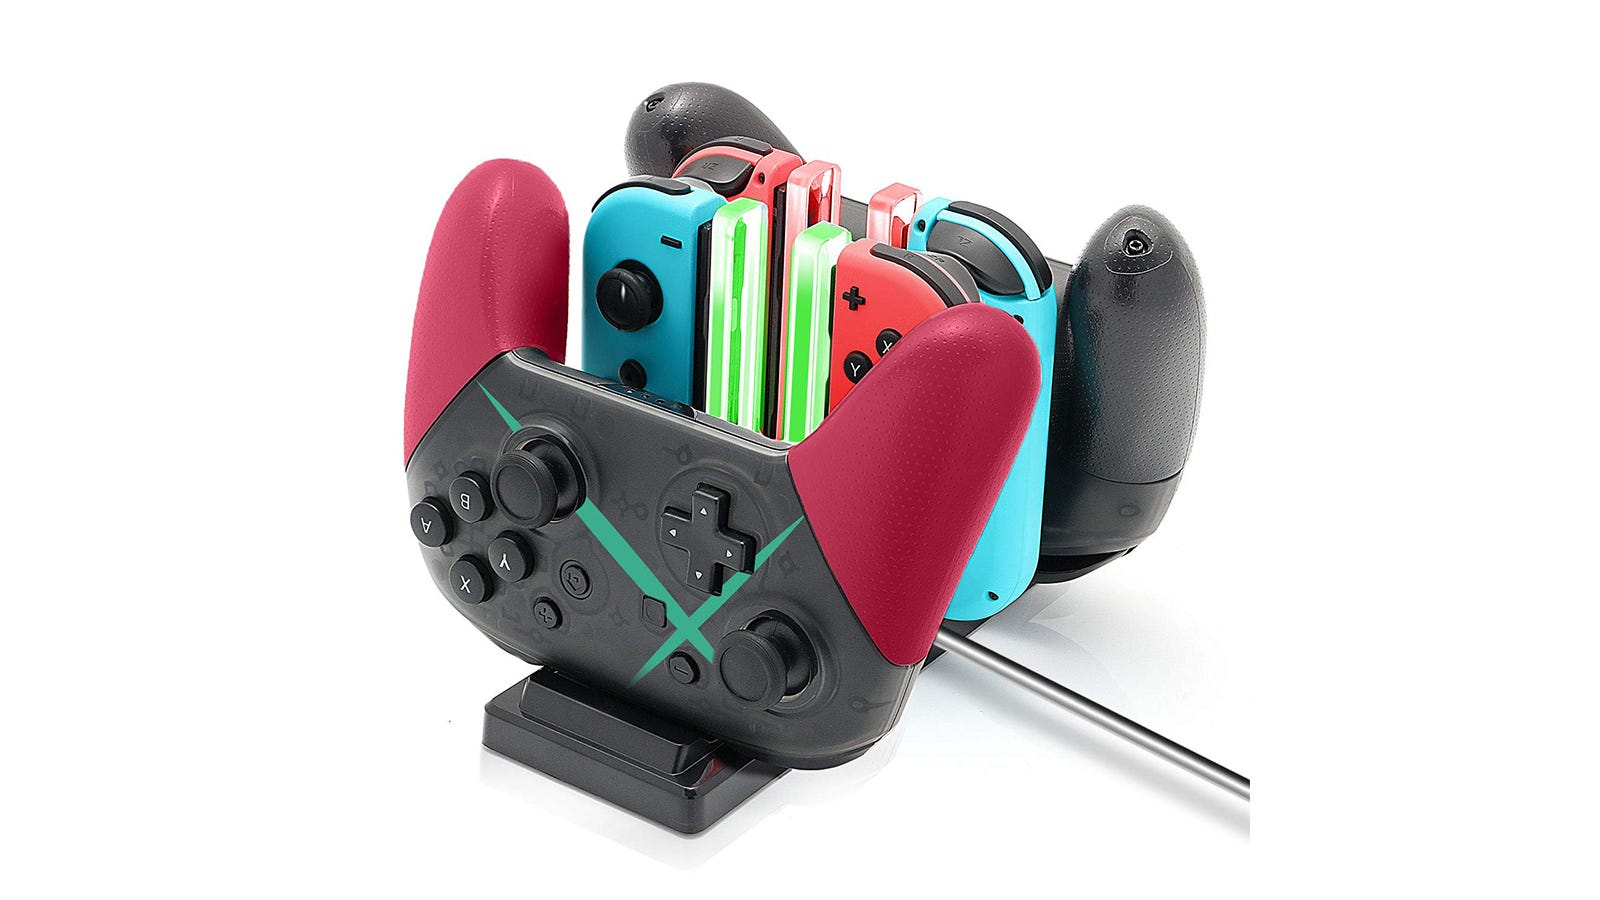 The FunDirect Controller Charging Dock with six controllers charging.